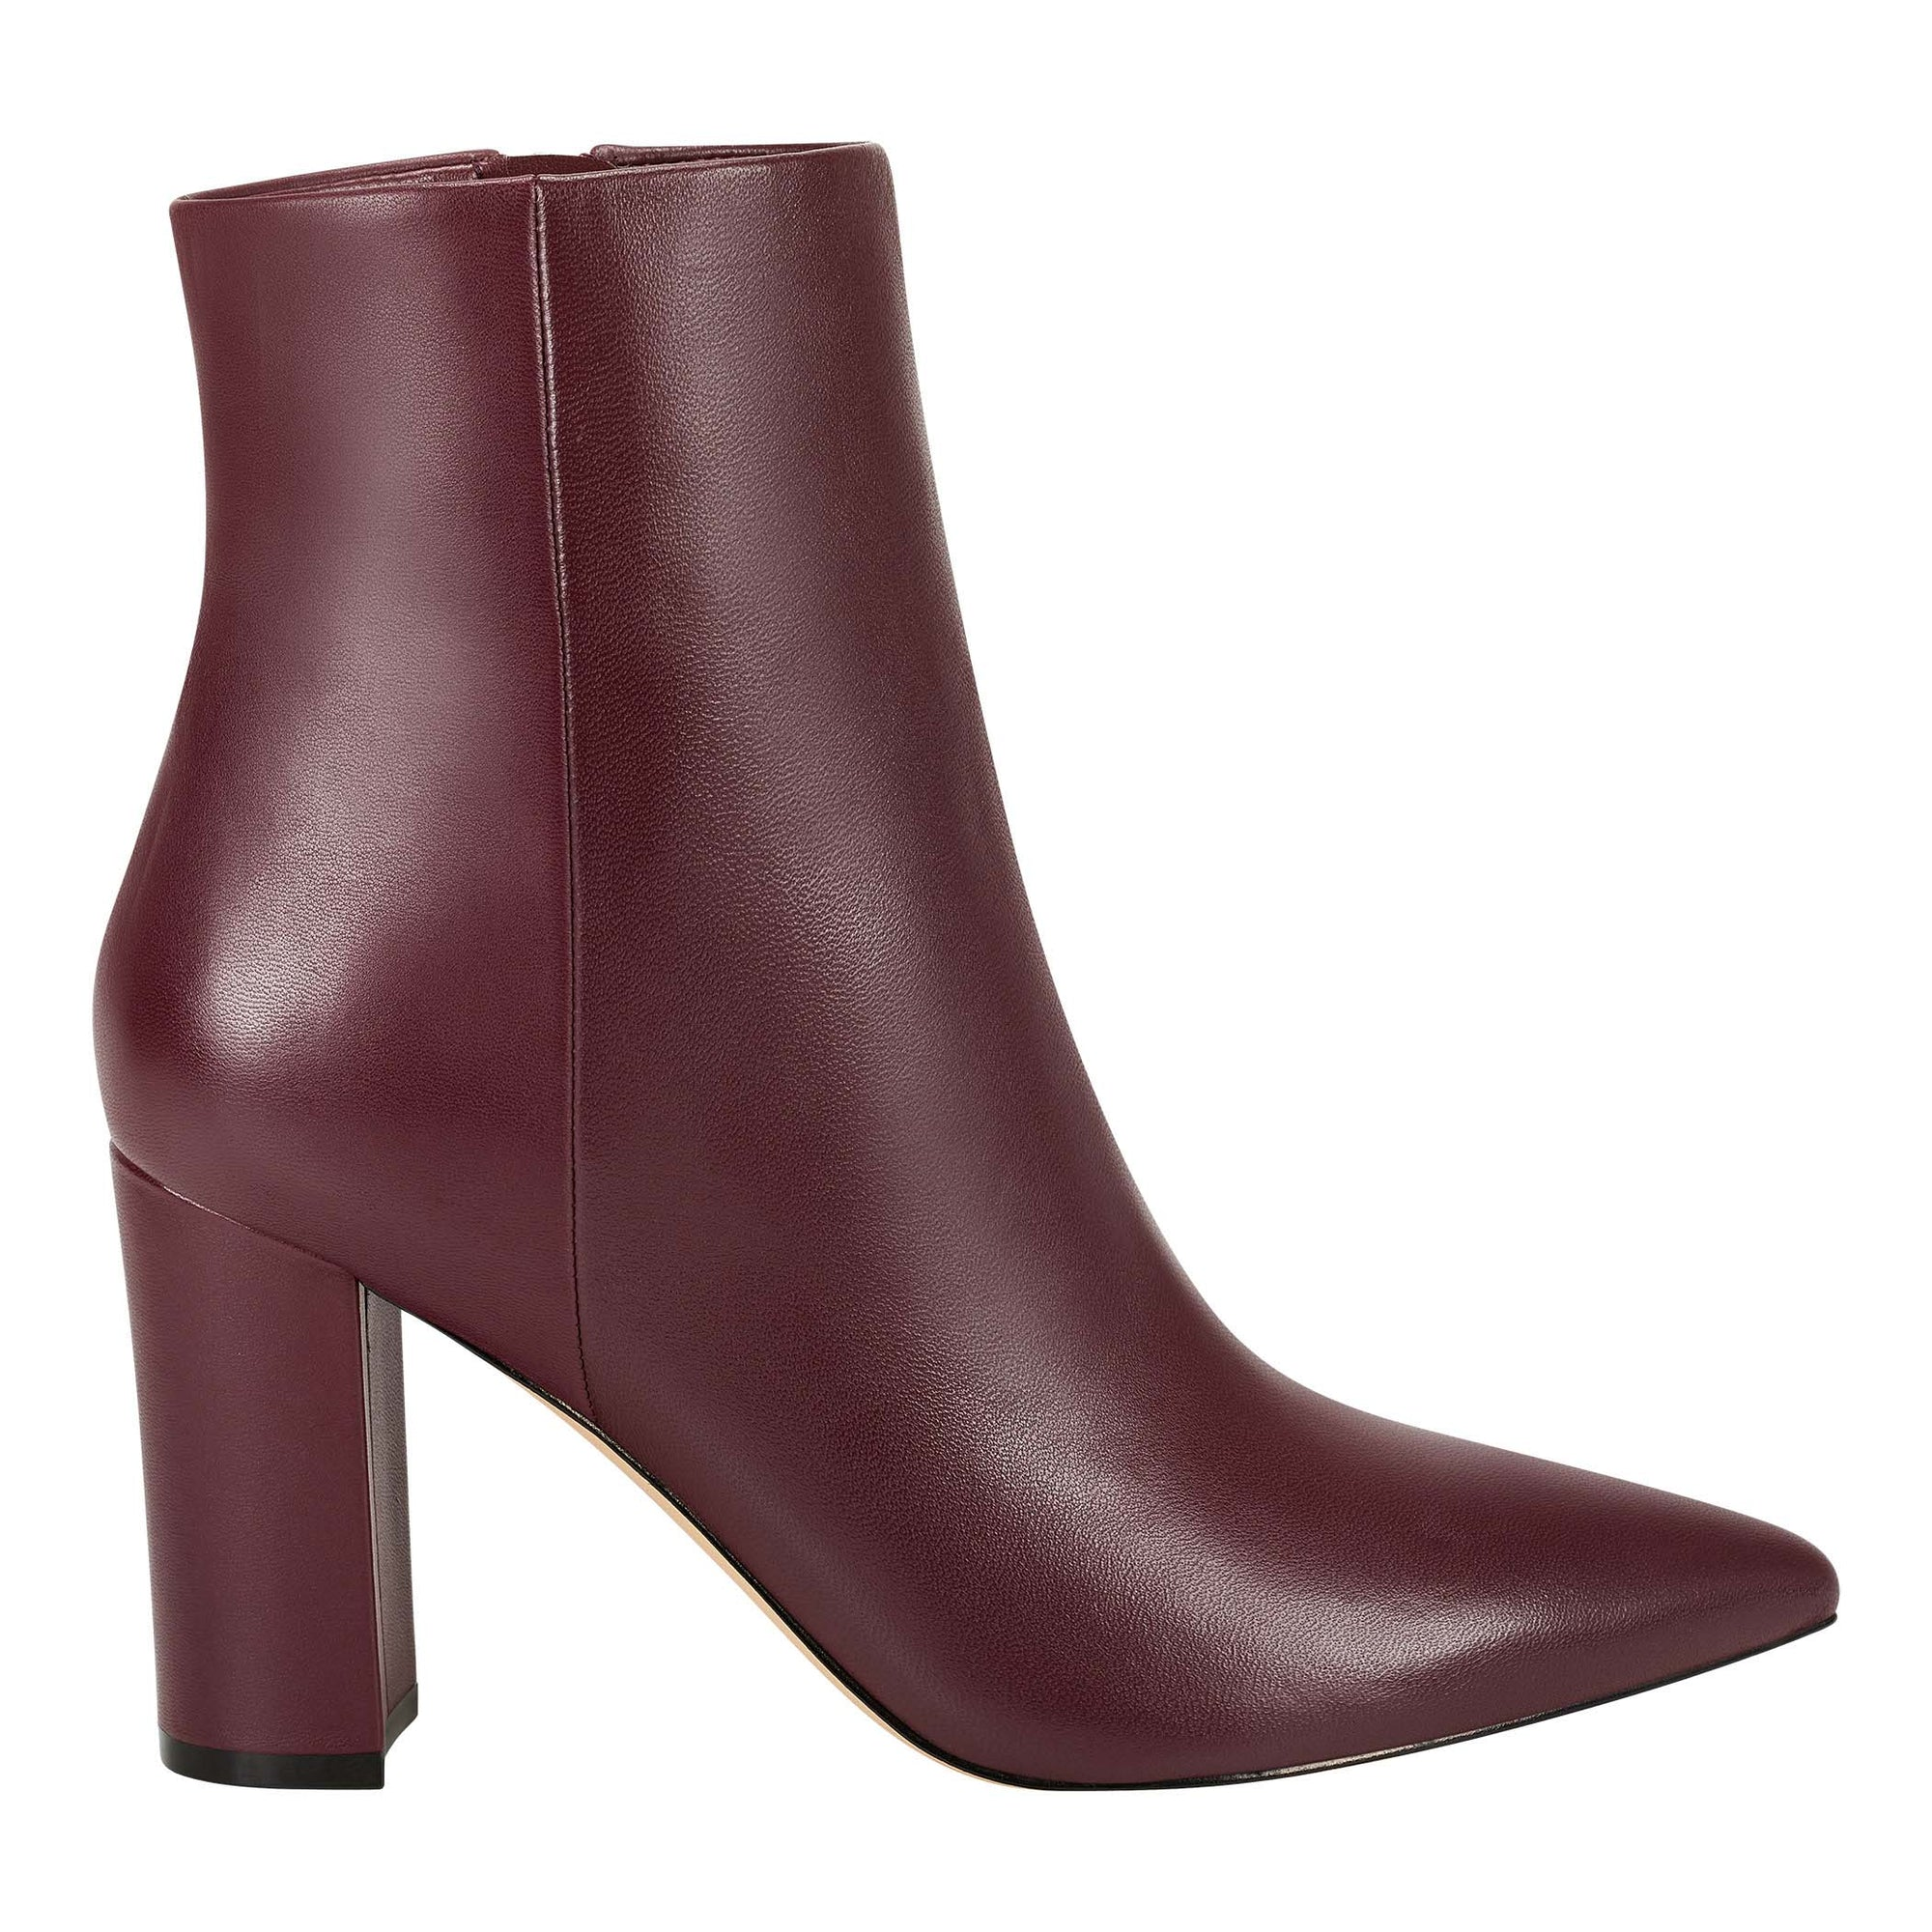 ulani-heeled-bootie-in-dark-red-leather